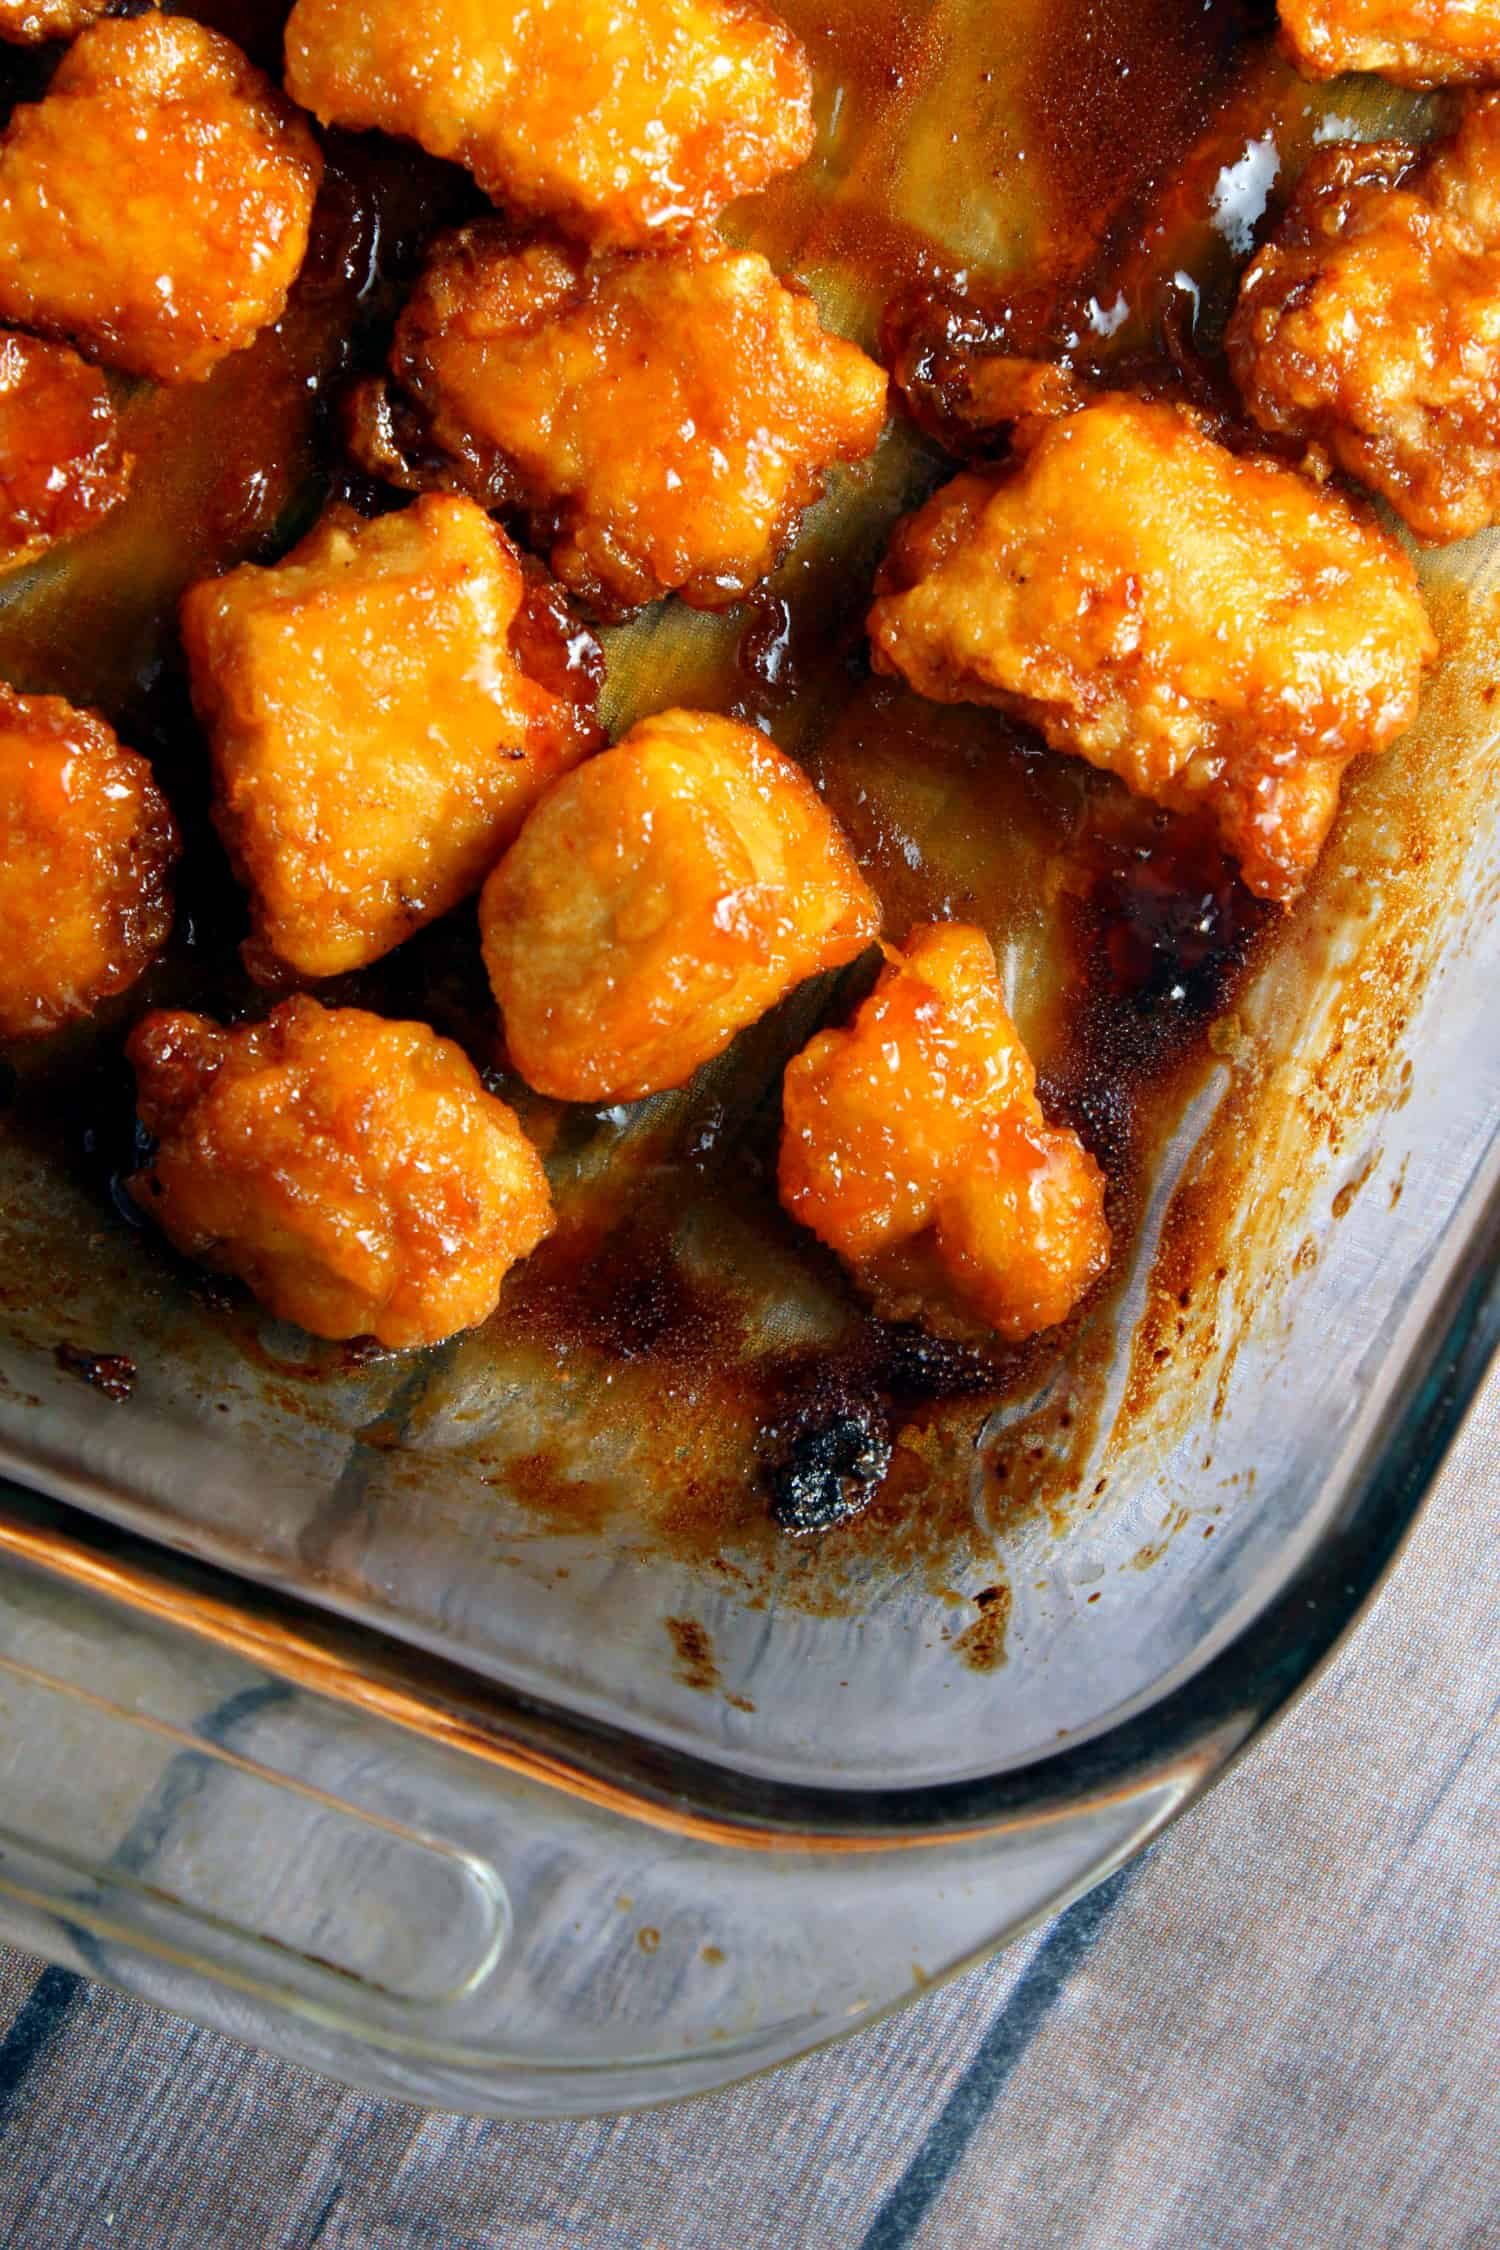 Baked Sweet and Sour Chicken